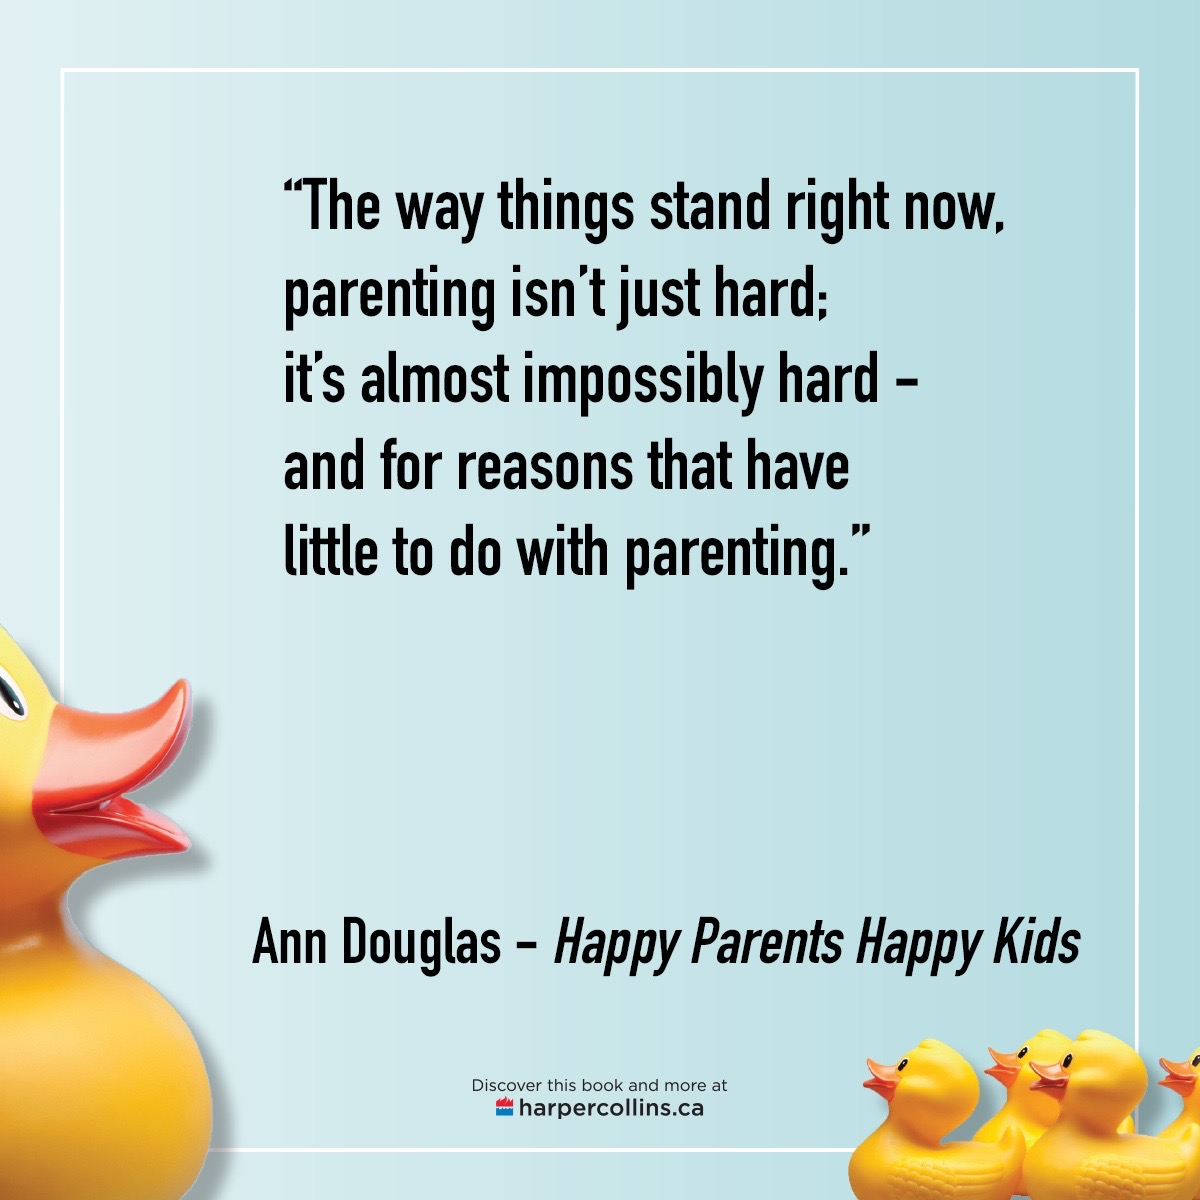 Parenting isn't just hard. It's almost impossibly hard. And for reasons that have little to do with parenting.